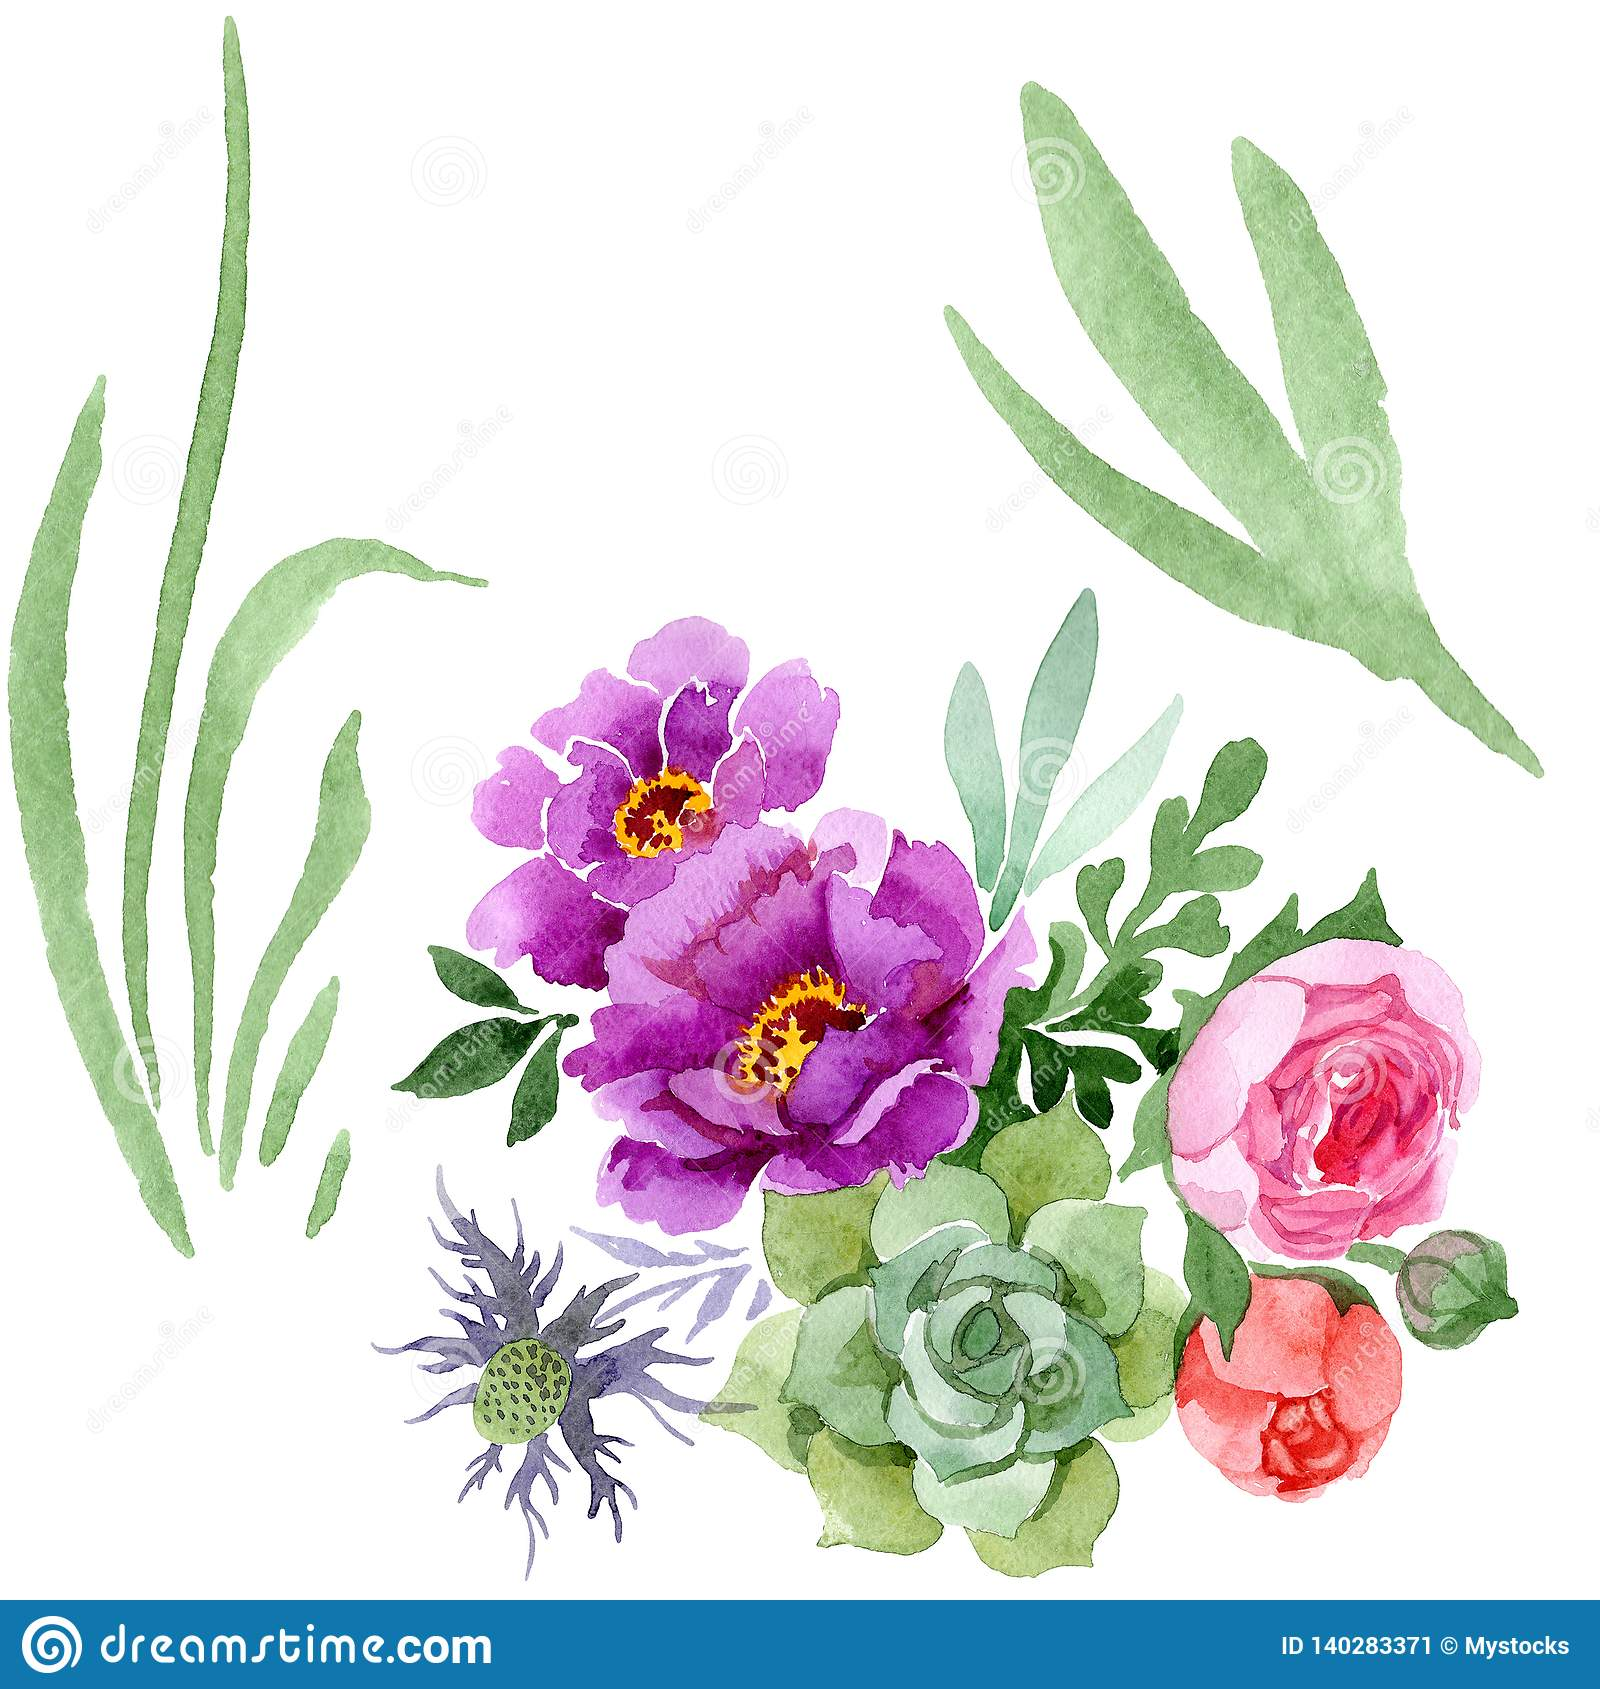 Peony And Succulent Bouquet Botanical Flower Watercolor Background Set Isolated Bouquet Illustration Element Stock Illustration Illustration Of Meadow Ornament 140283371